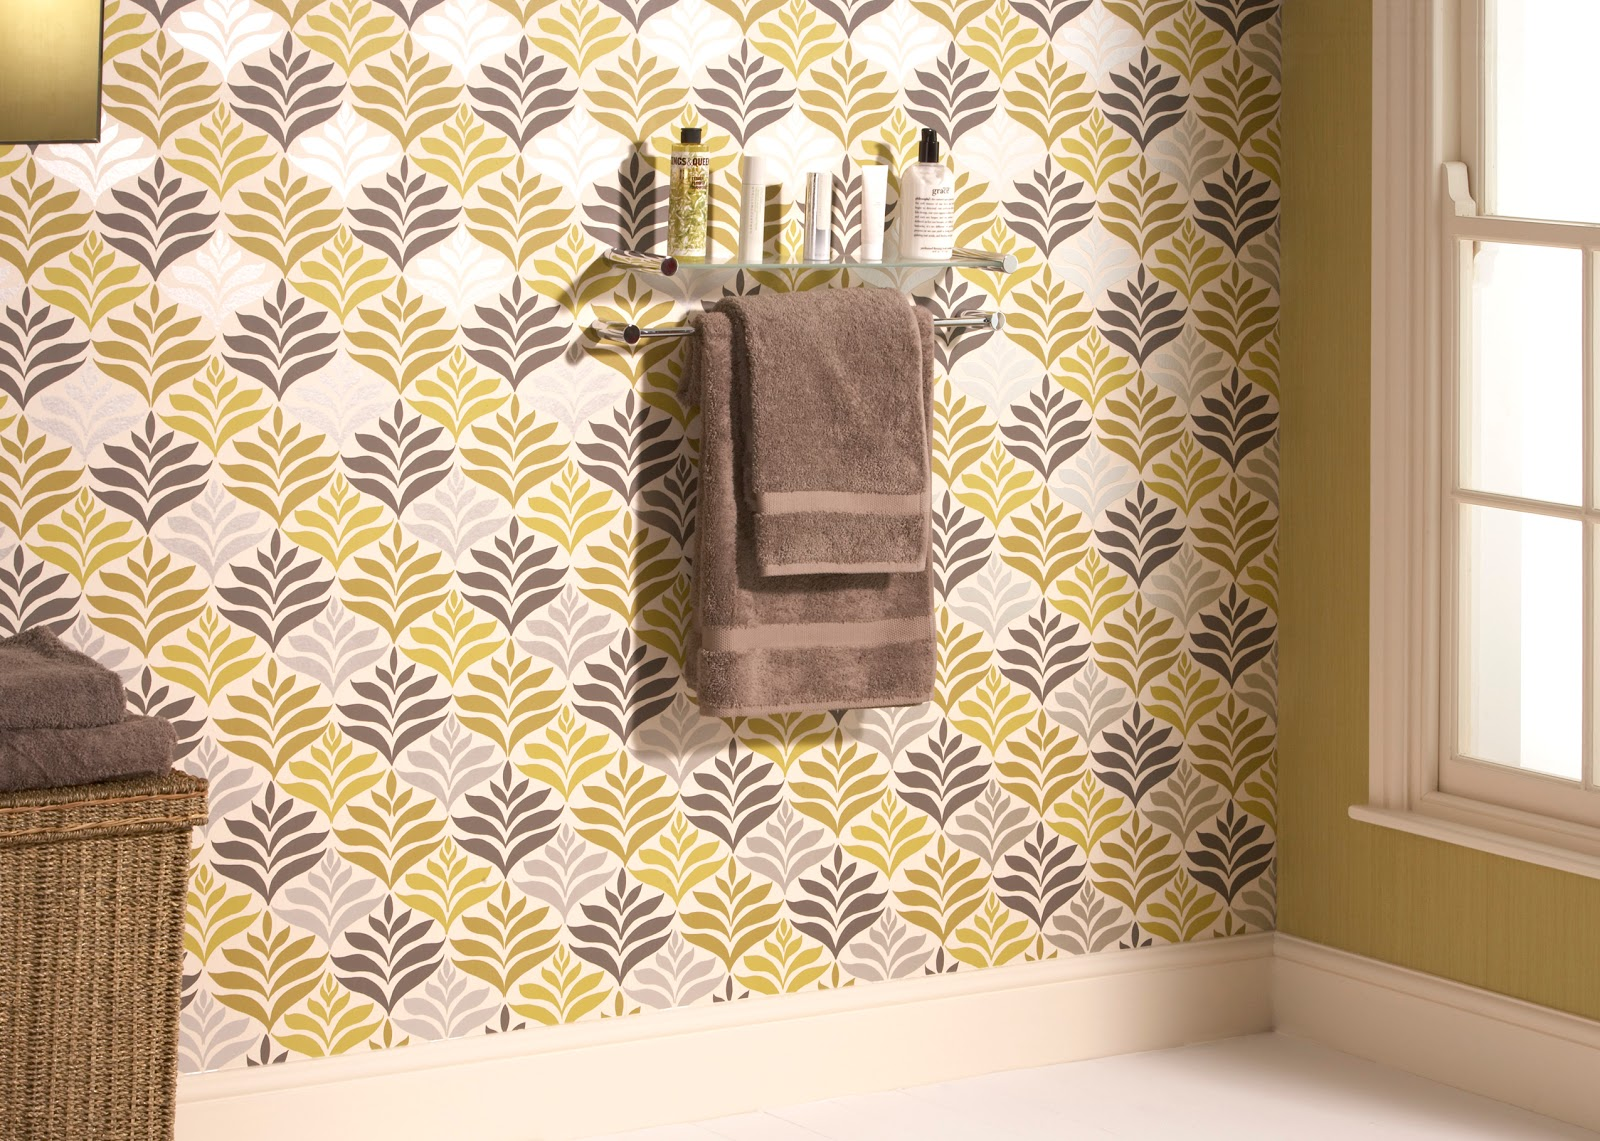 wallpaper photo taken from today interiors note for bathroom wallpaper ...